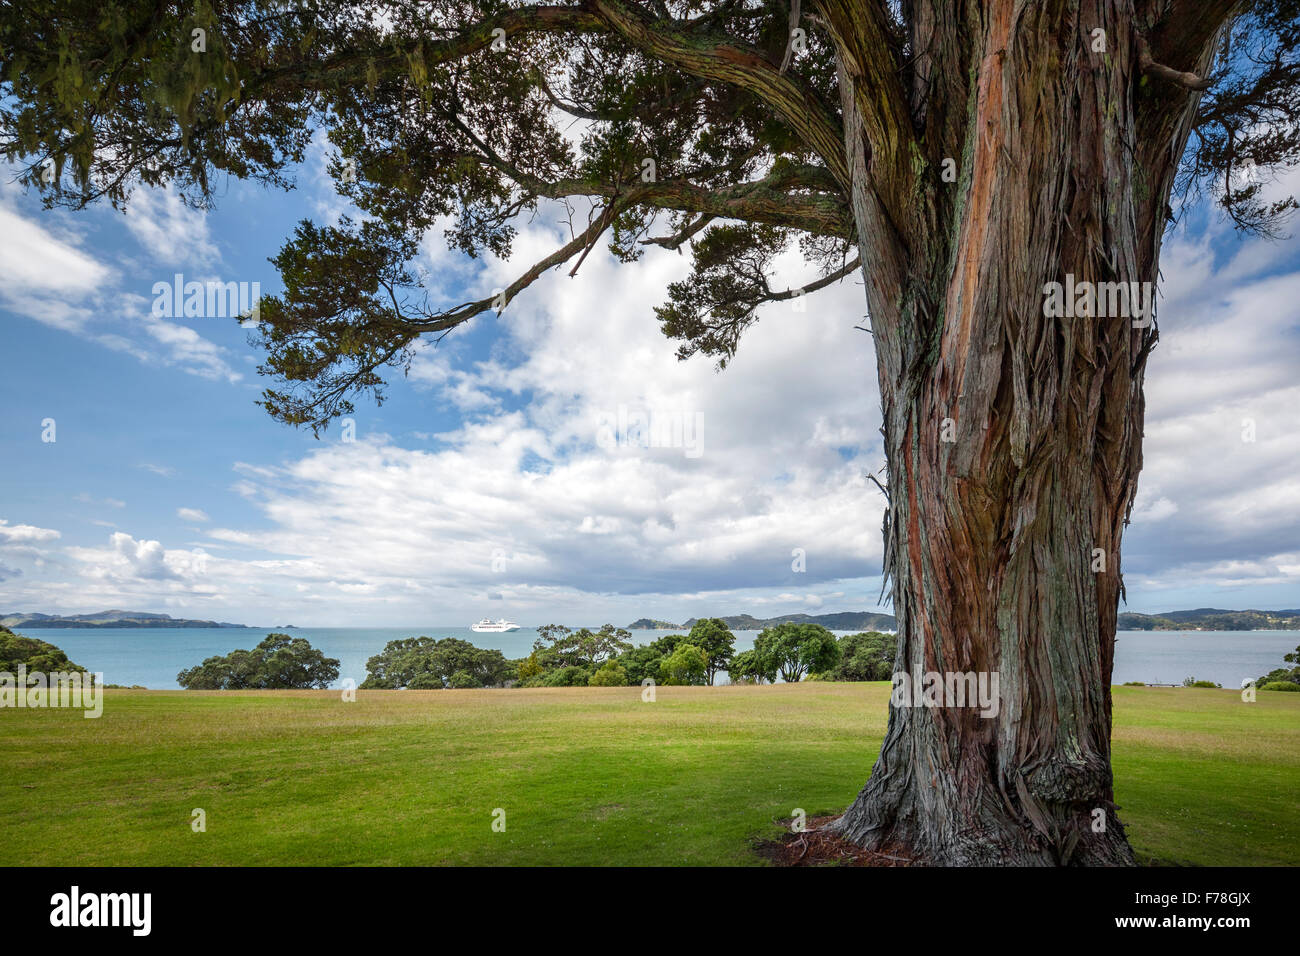 New Zealand. Waitangi Treaty Grounds and The Bay of Islands. Cruise ship luxury cruise liner in the bay. Stock Photo